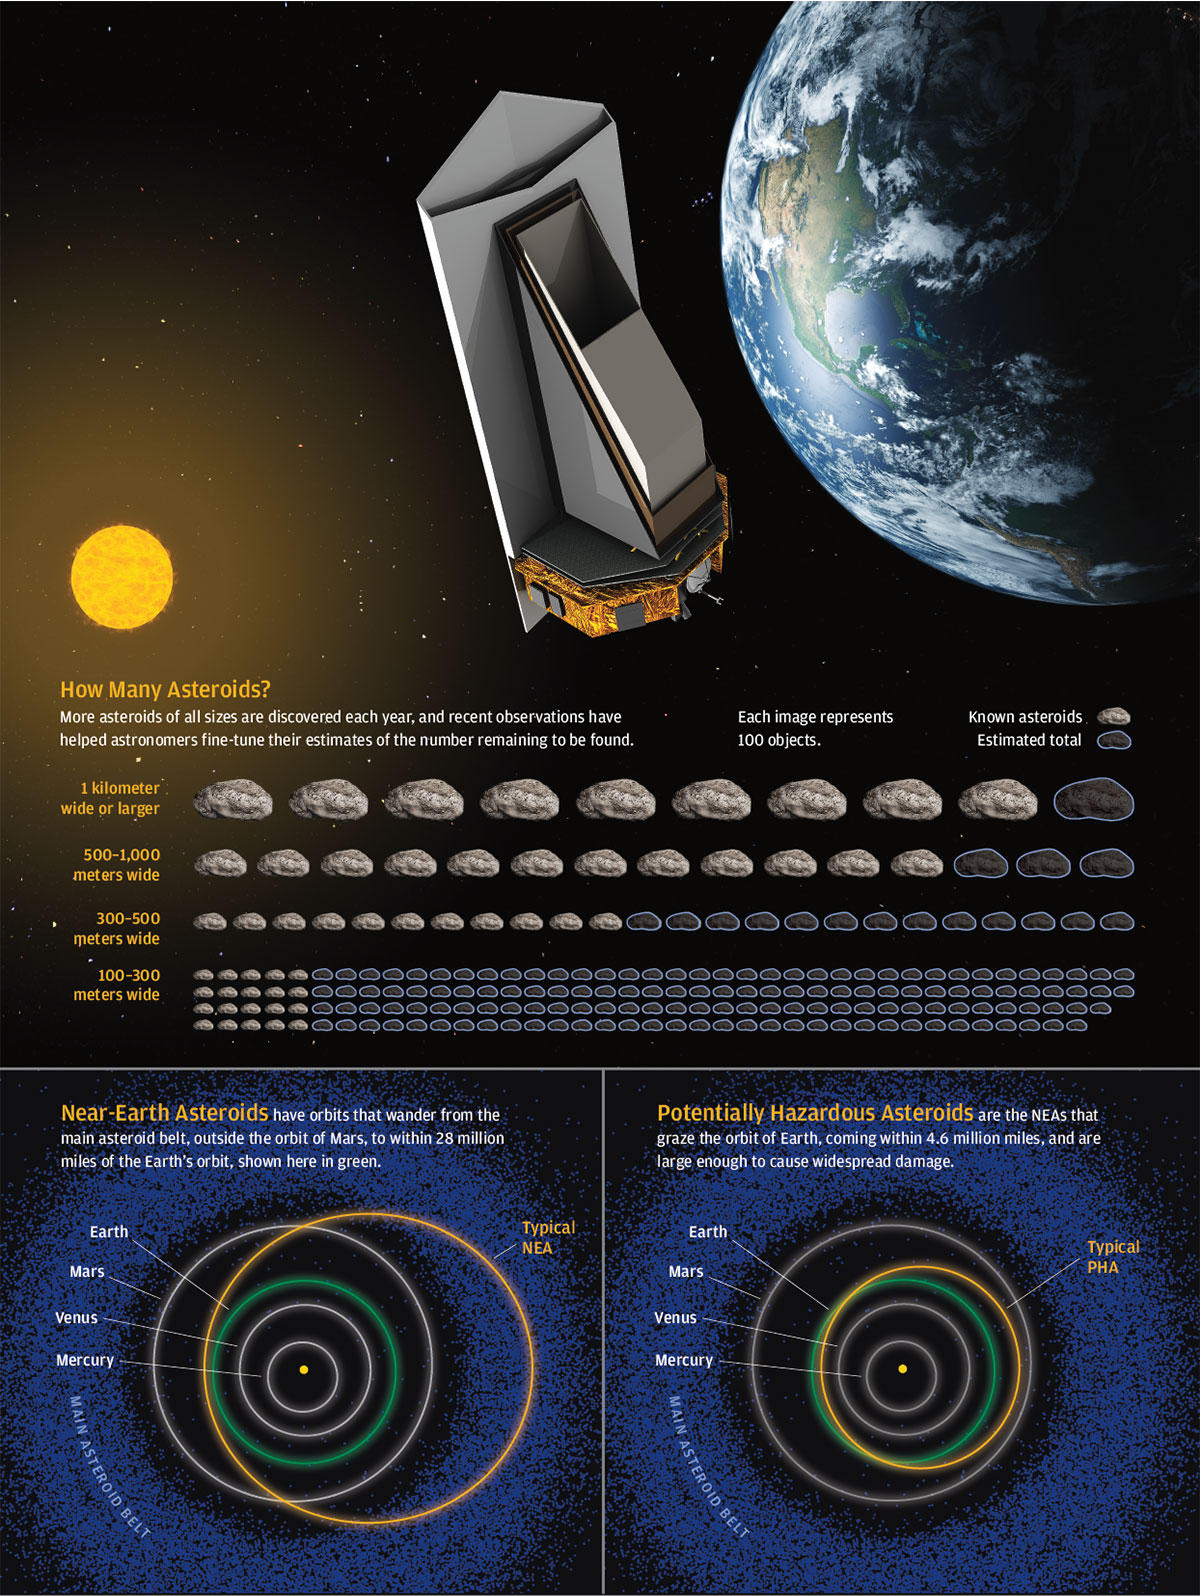 graphic illustrates the size of asteroids detected each year